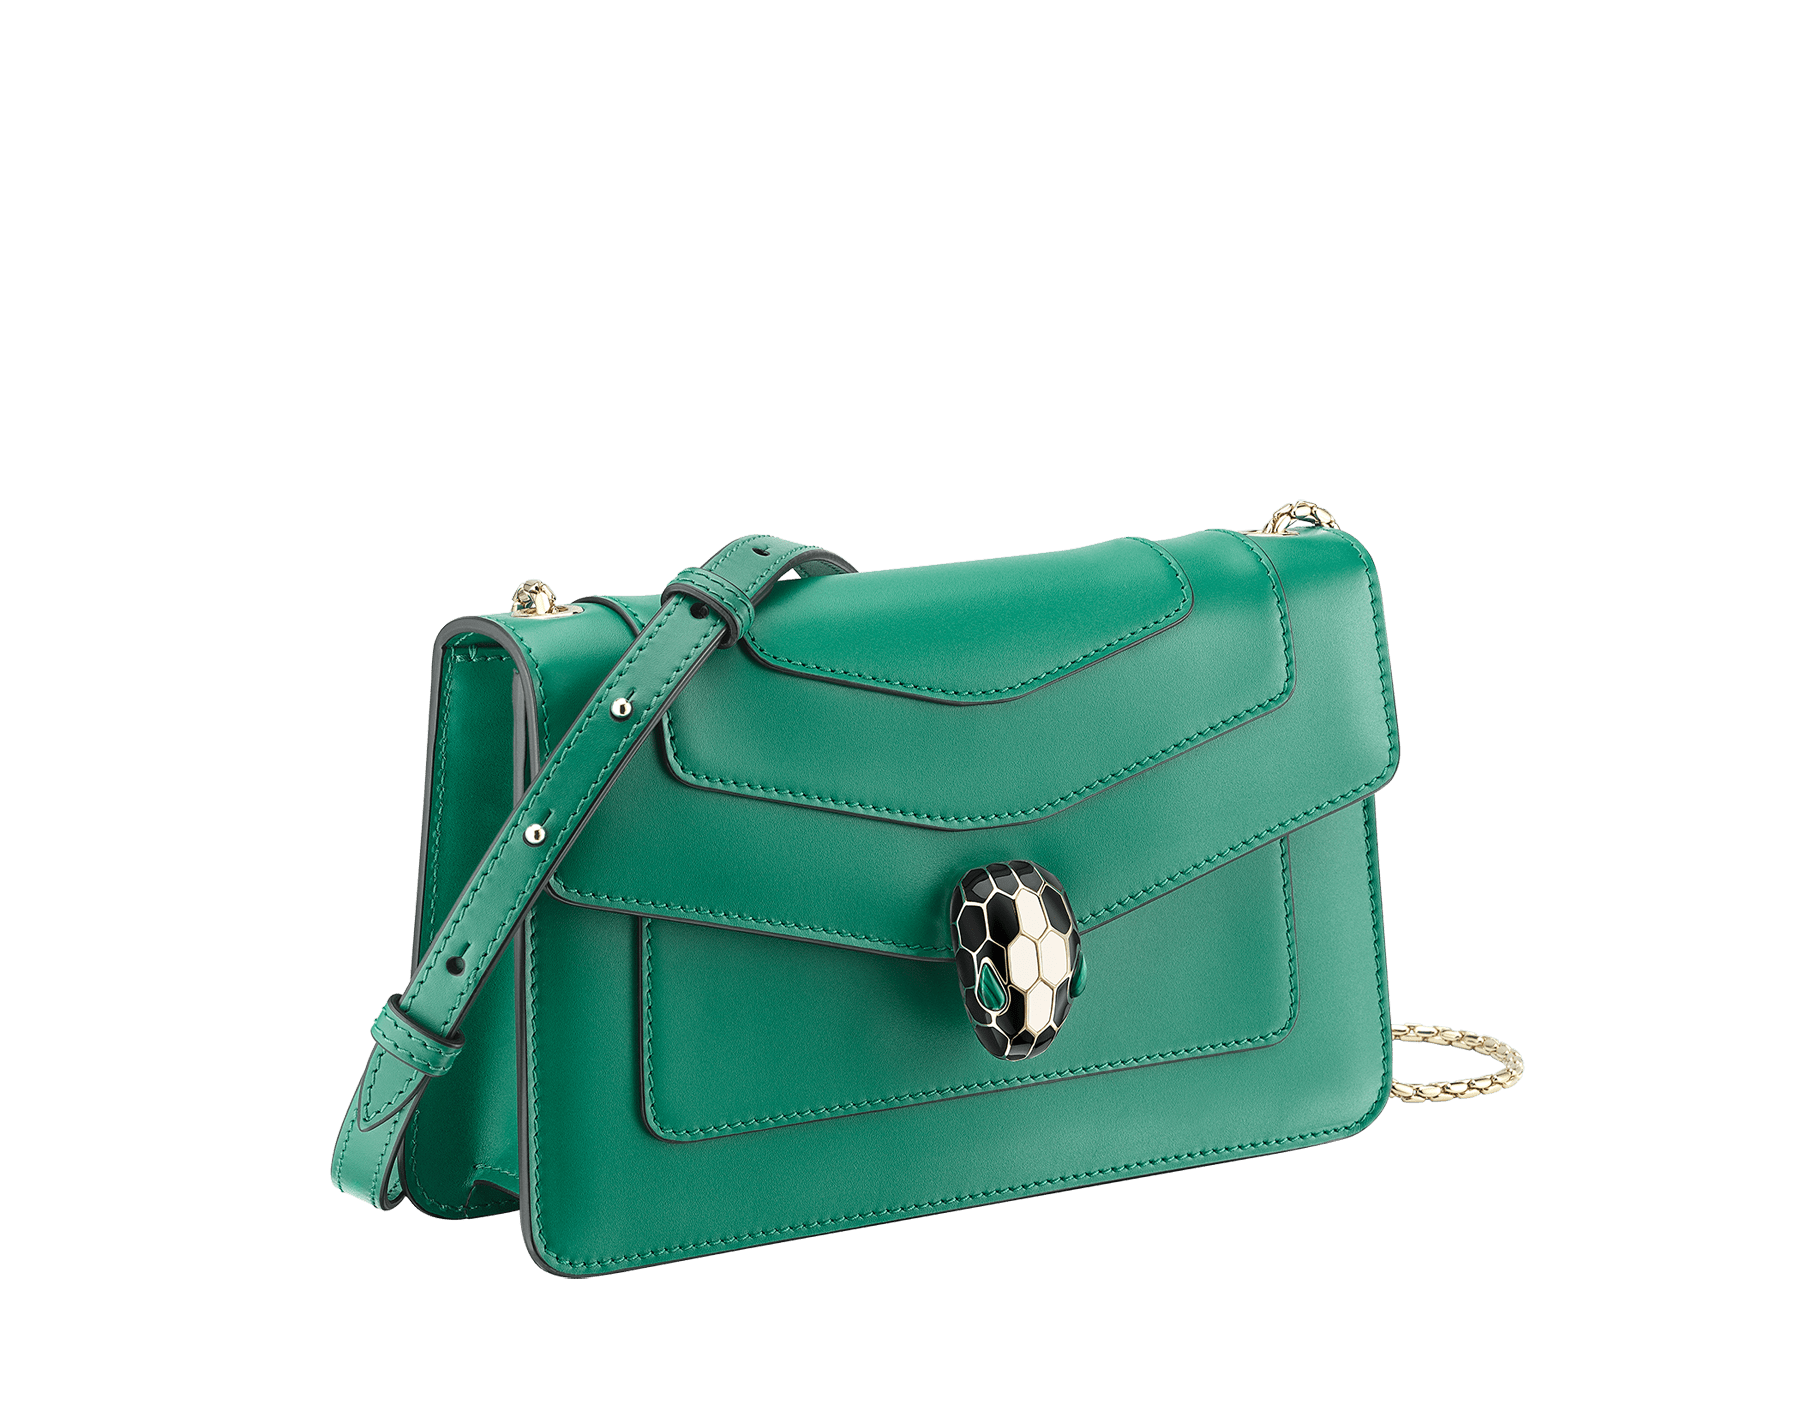 """Serpenti Forever"" crossbody bag in crystal rose calf leather. Iconic snakehead closure in light gold plated brass enriched with black and white enamel and green malachite eyes 625-CLa image 2"